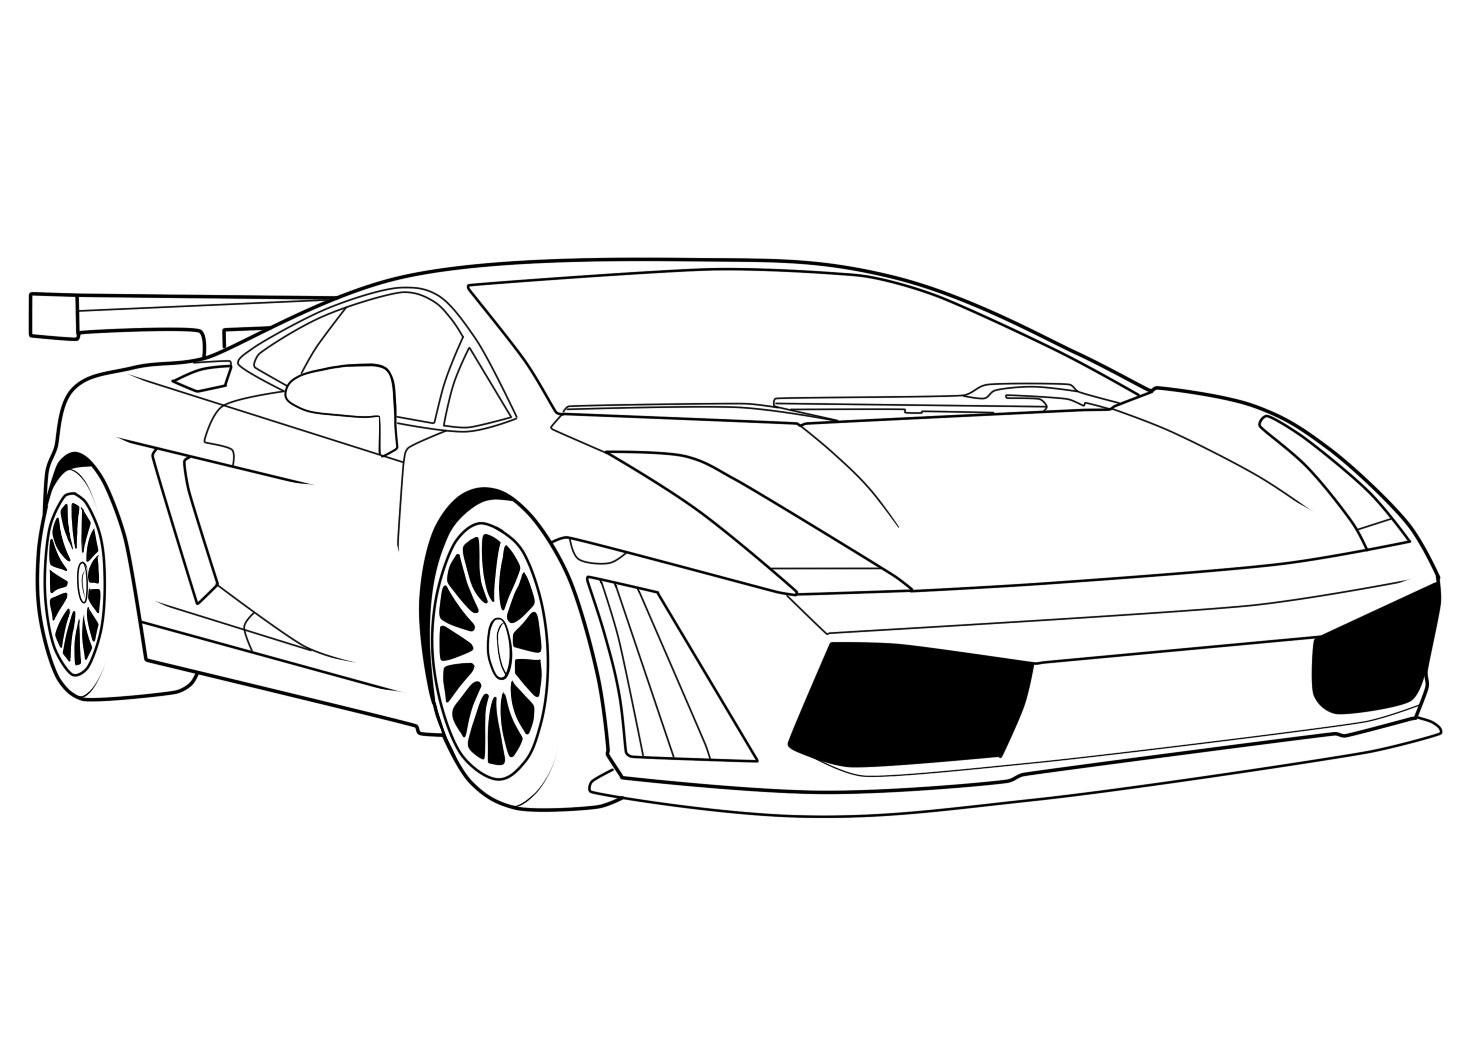 Coloring printouts of exotic cars - Lamborghini Coloring Pages 02